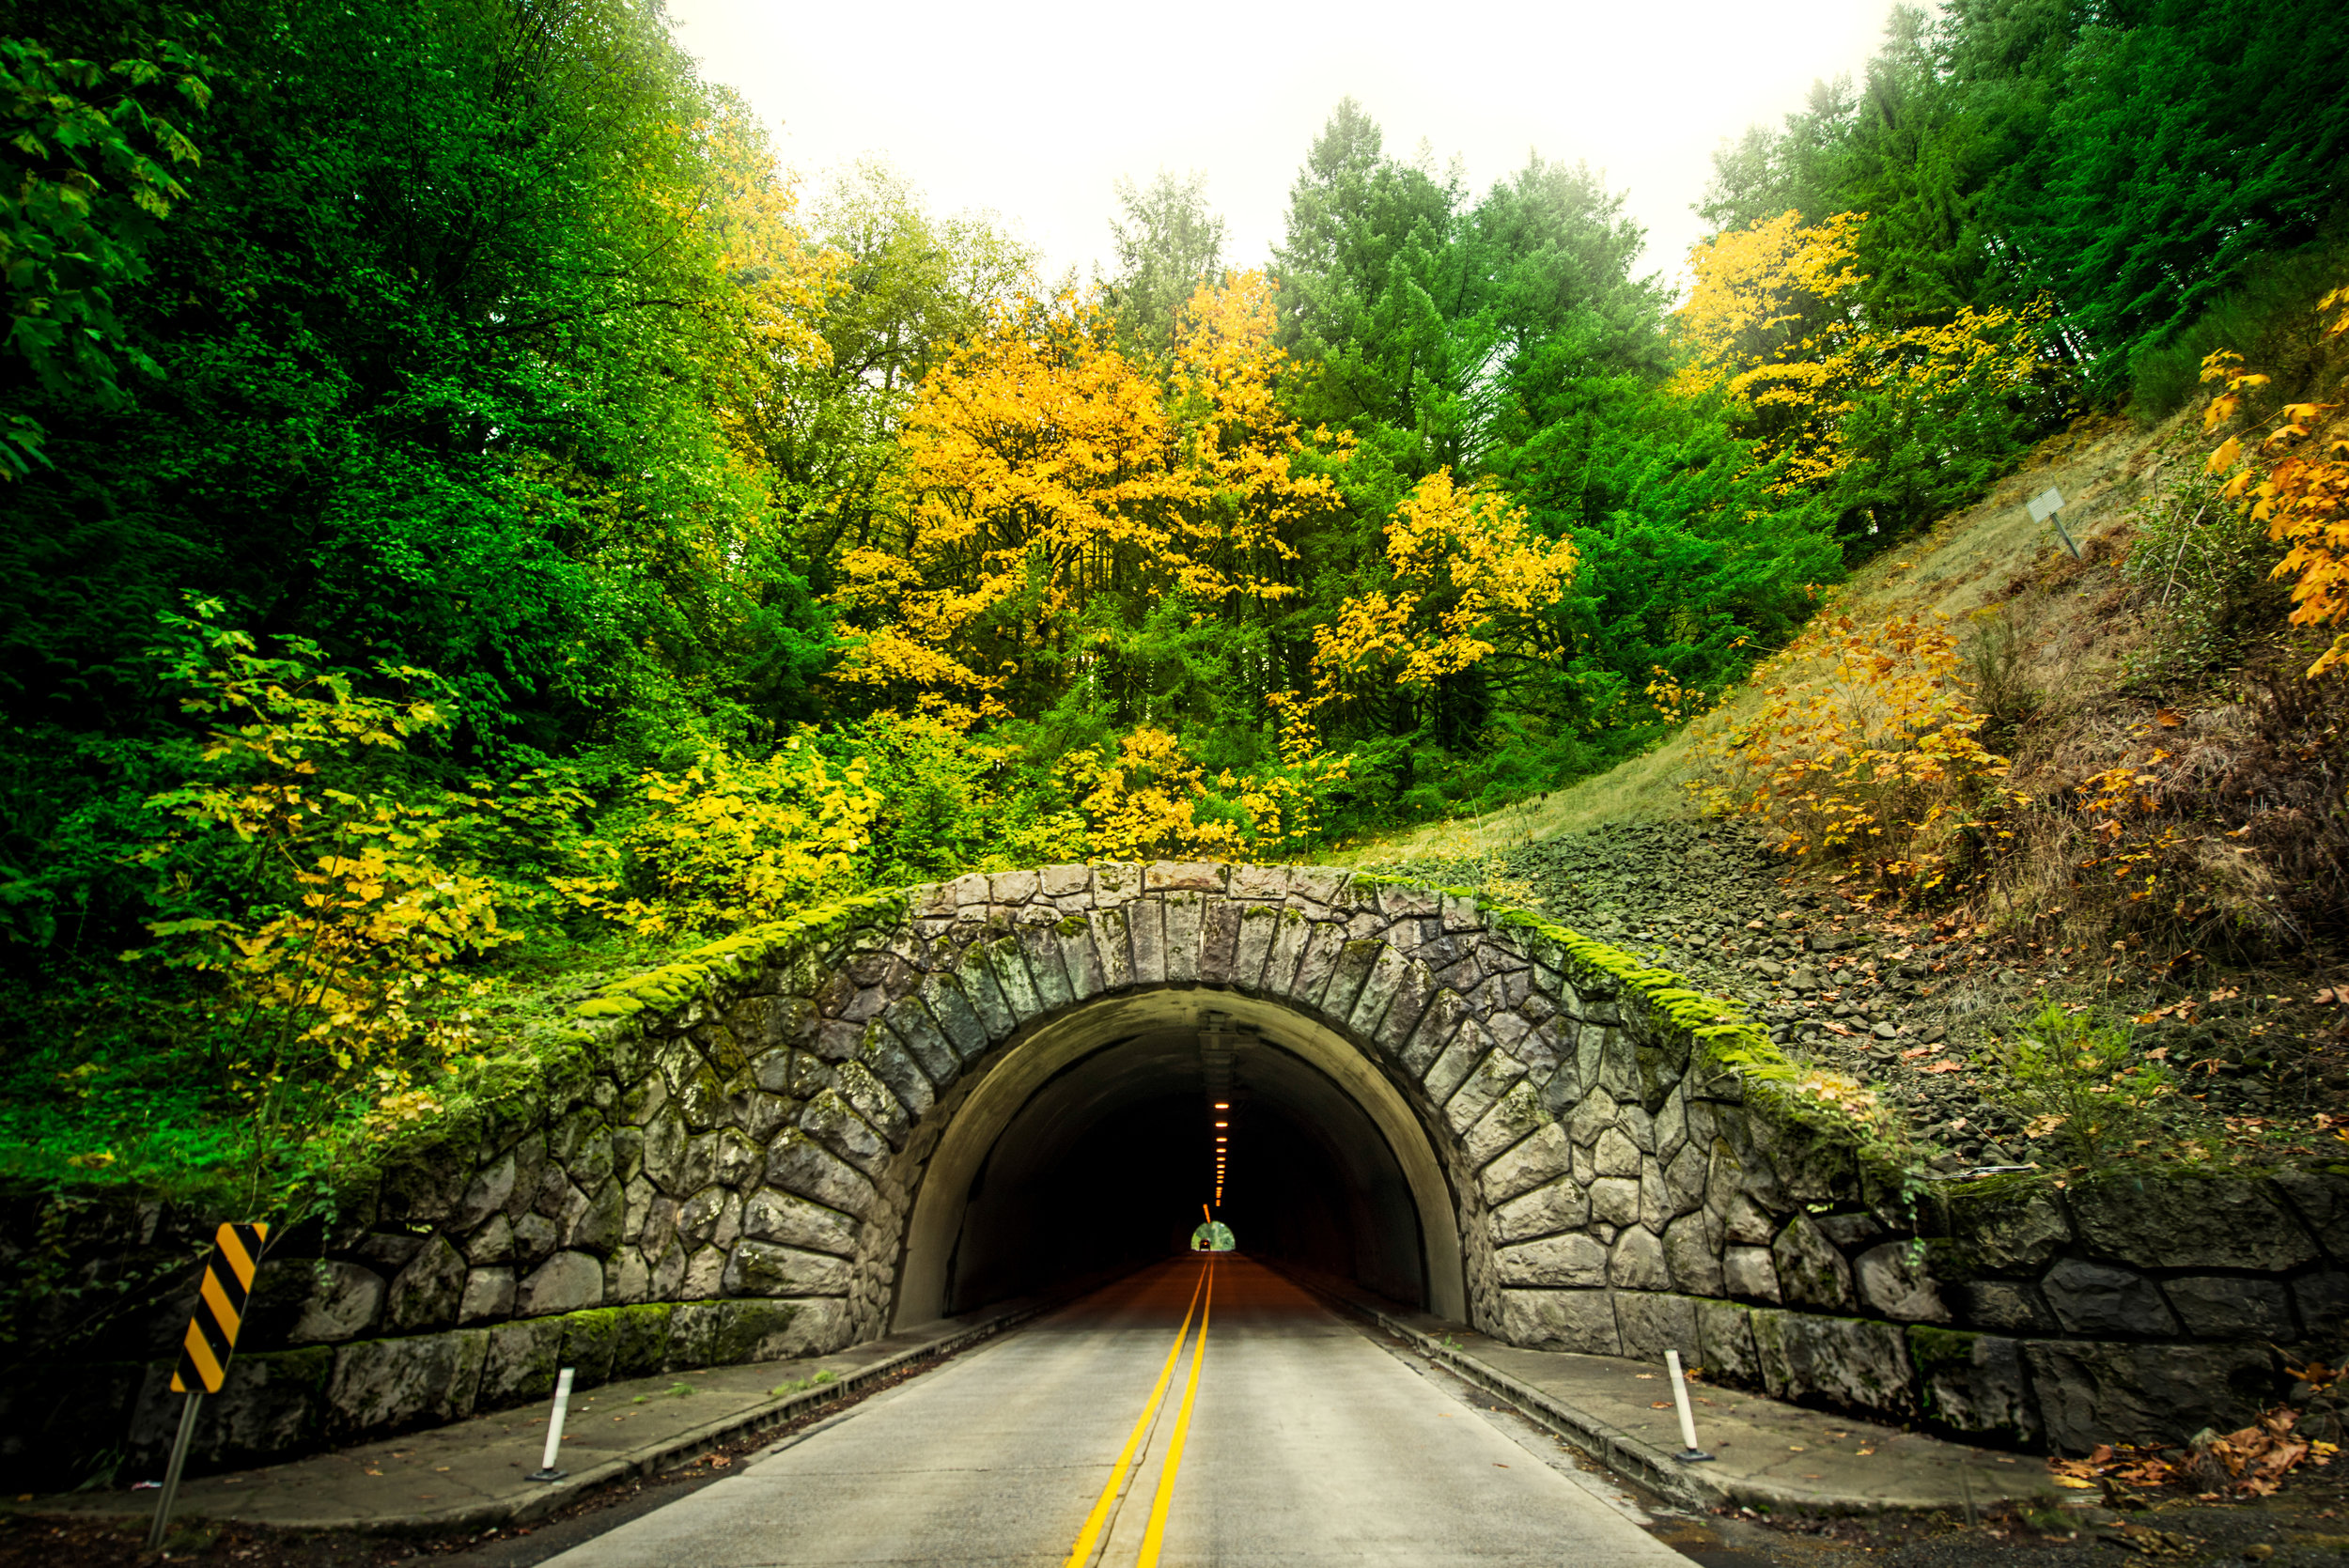 Tunnel on Highway 26